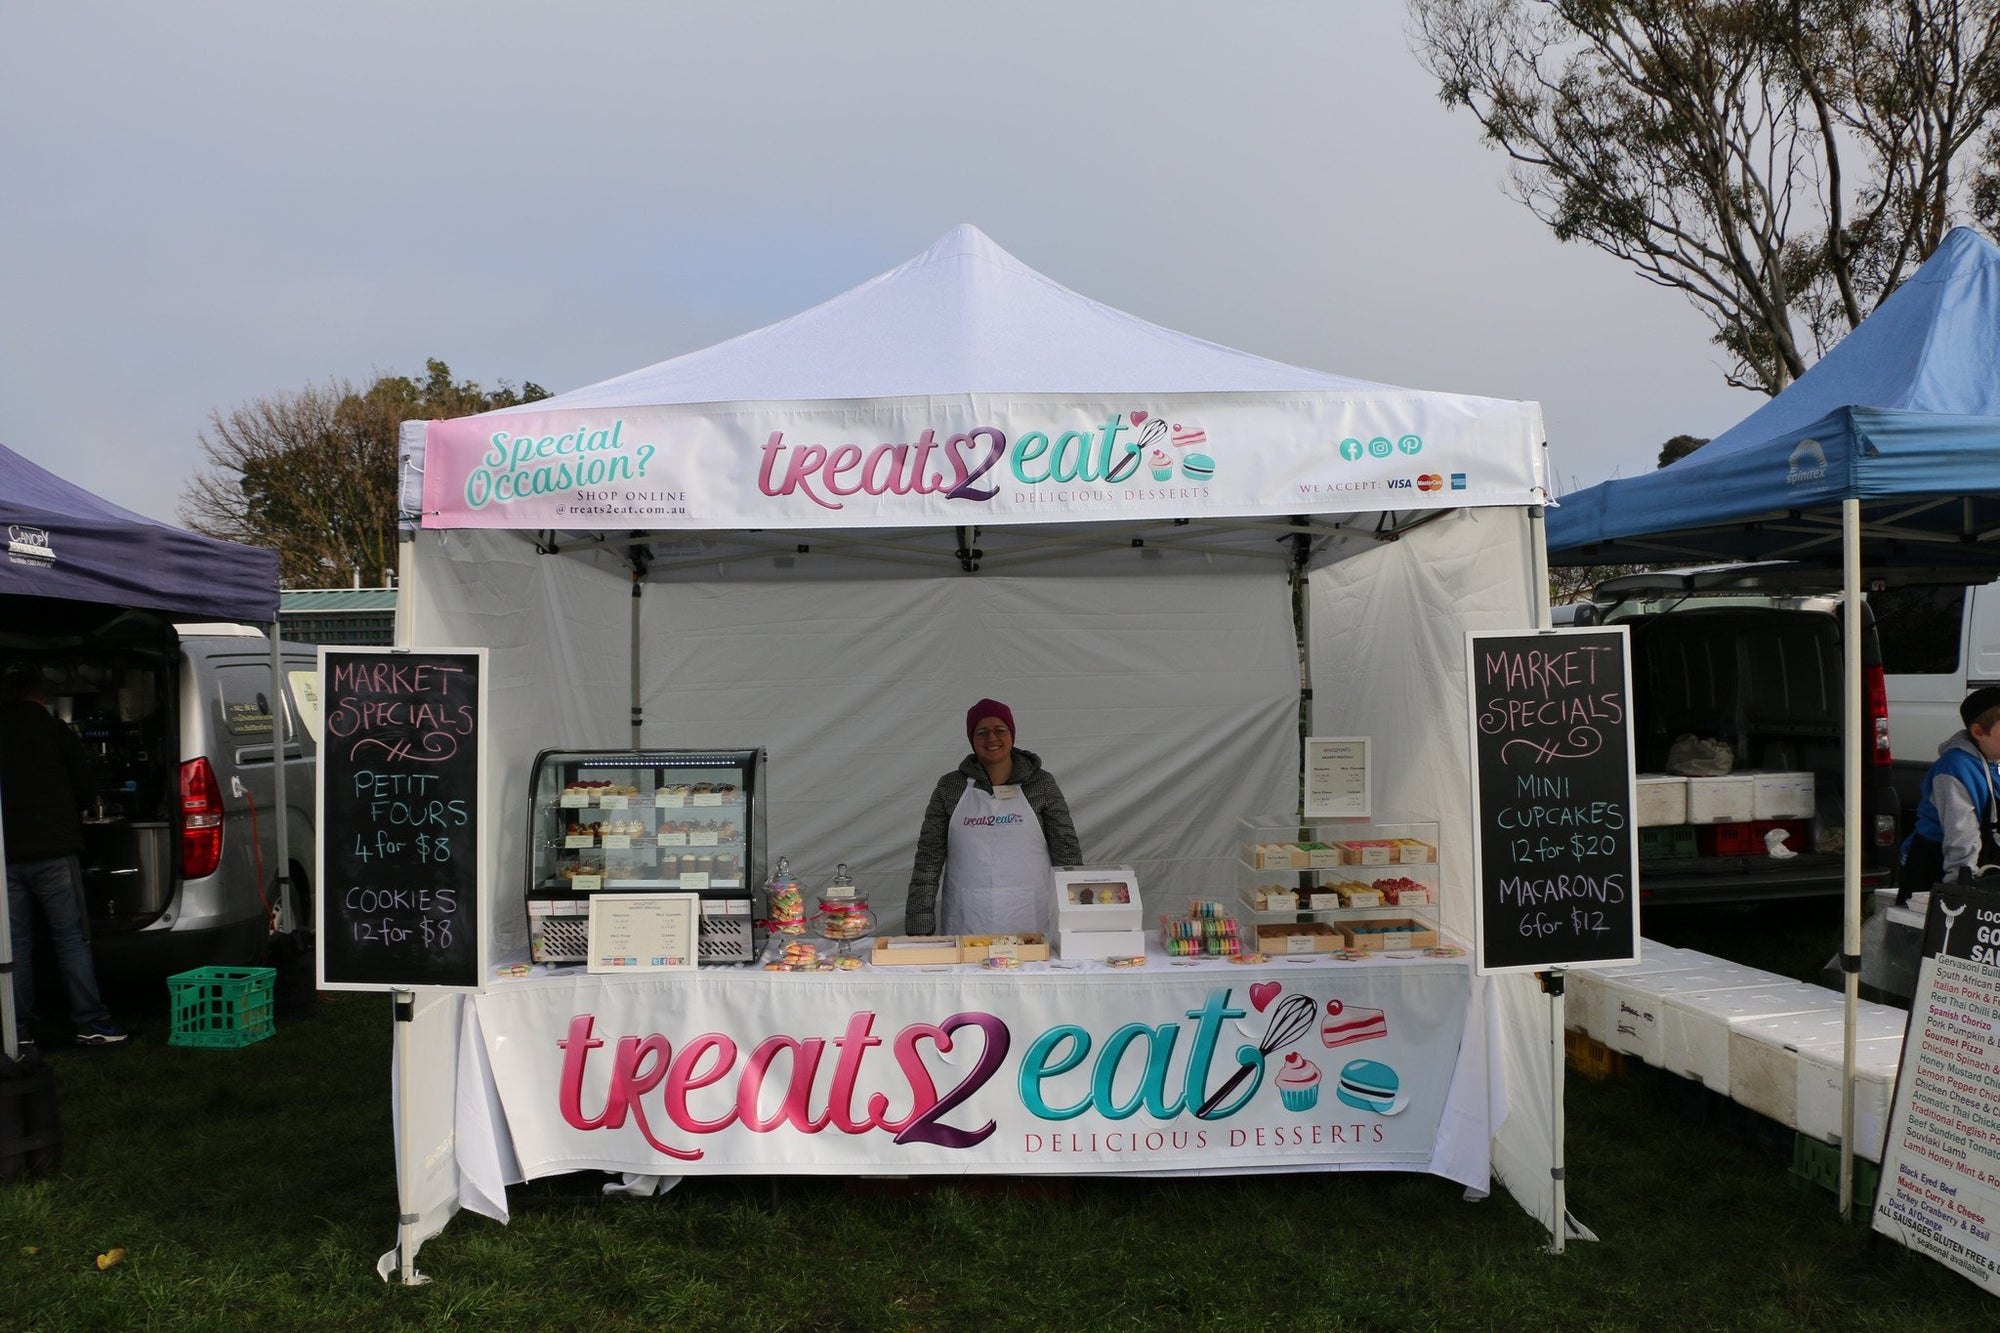 Treats2eat @ Lardner Park Craft Market - 23/4/17